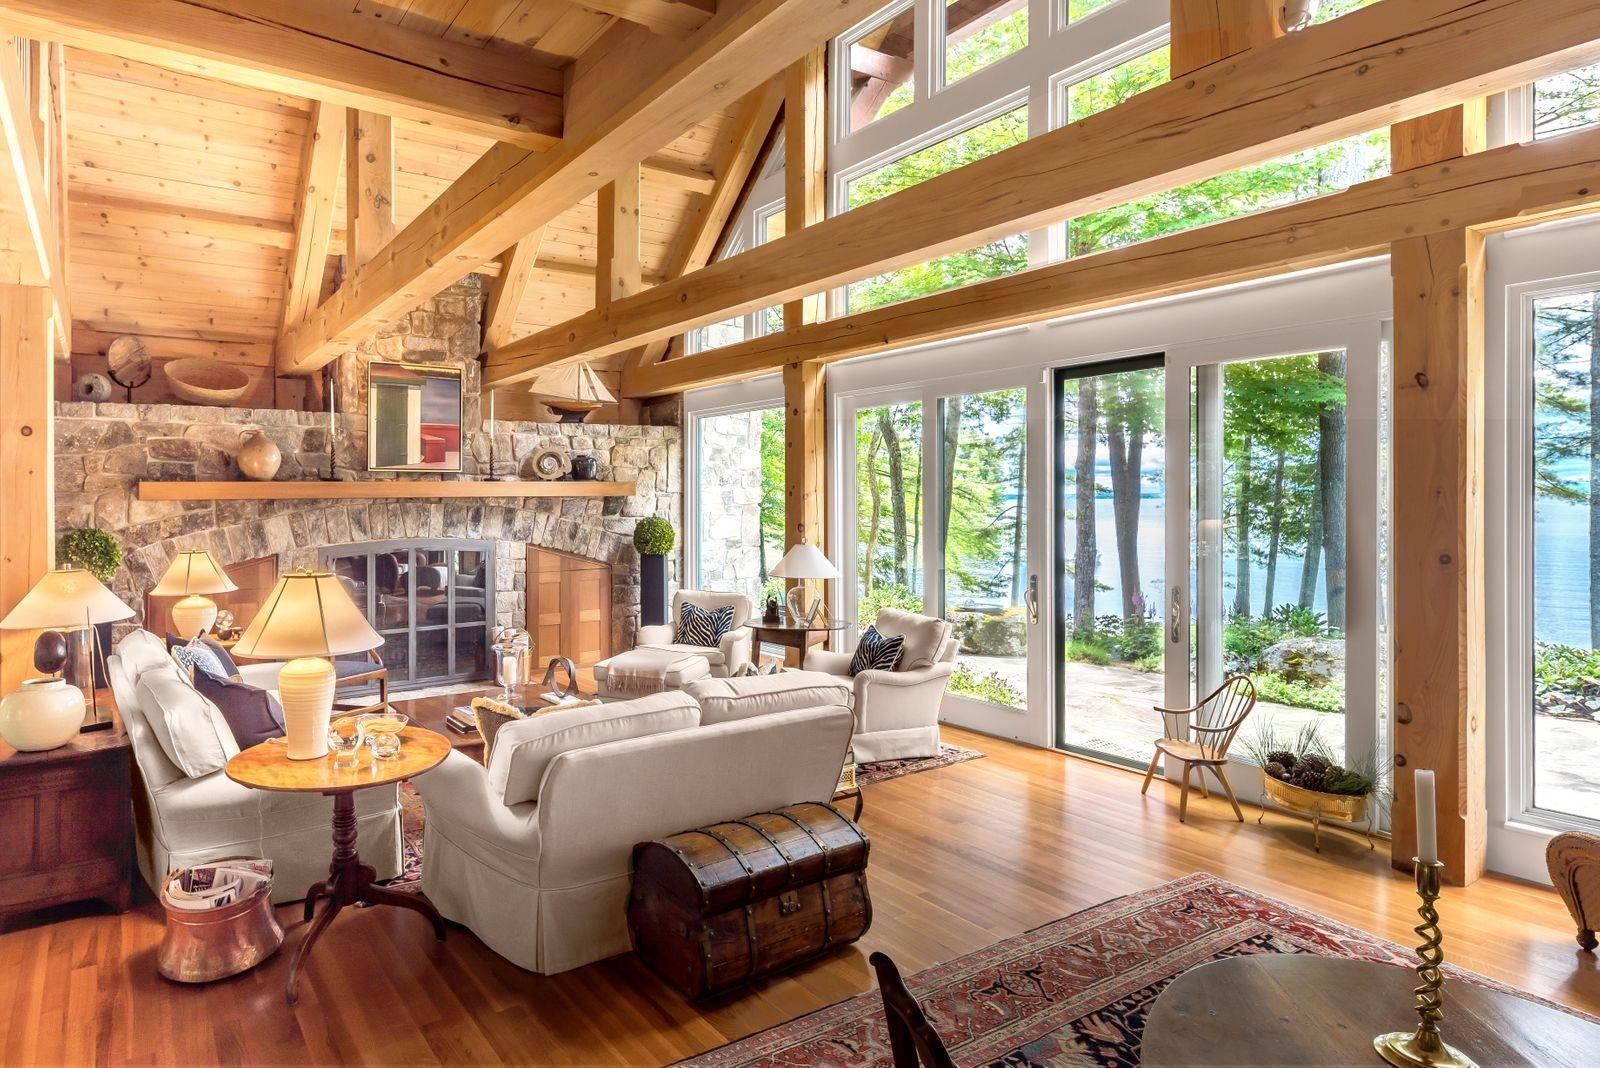 Single Family Home 용 매매 에 Schooner Cove on Sebago Lake 58 Sunset Chimneys Rd. Raymond, 마이애미,04071 미국